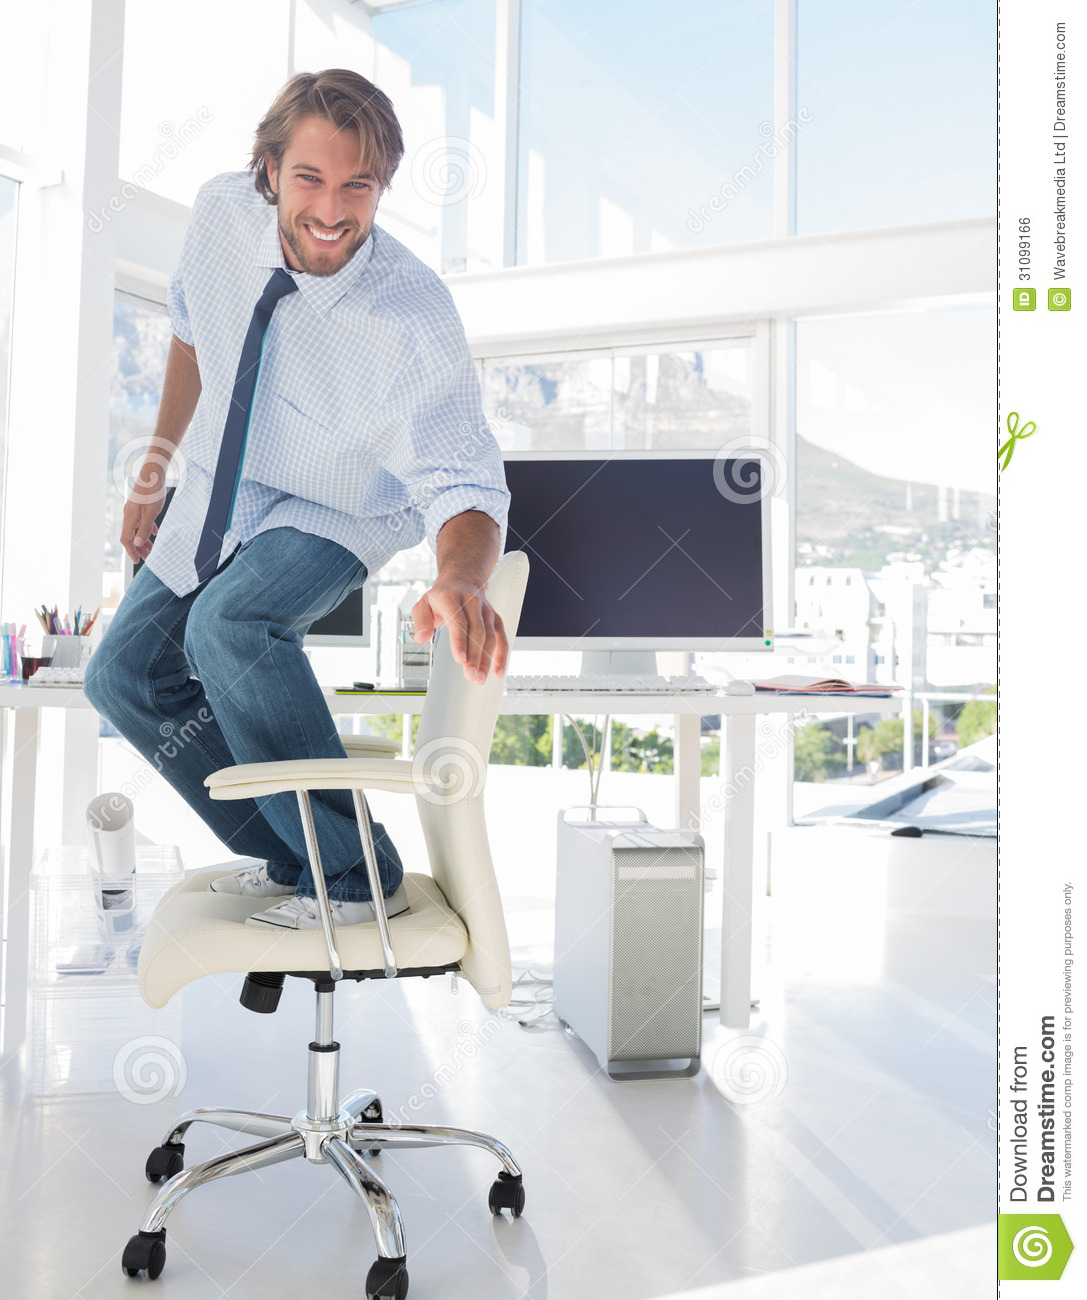 Man Surfing His Office Chair Royalty Free Stock Image